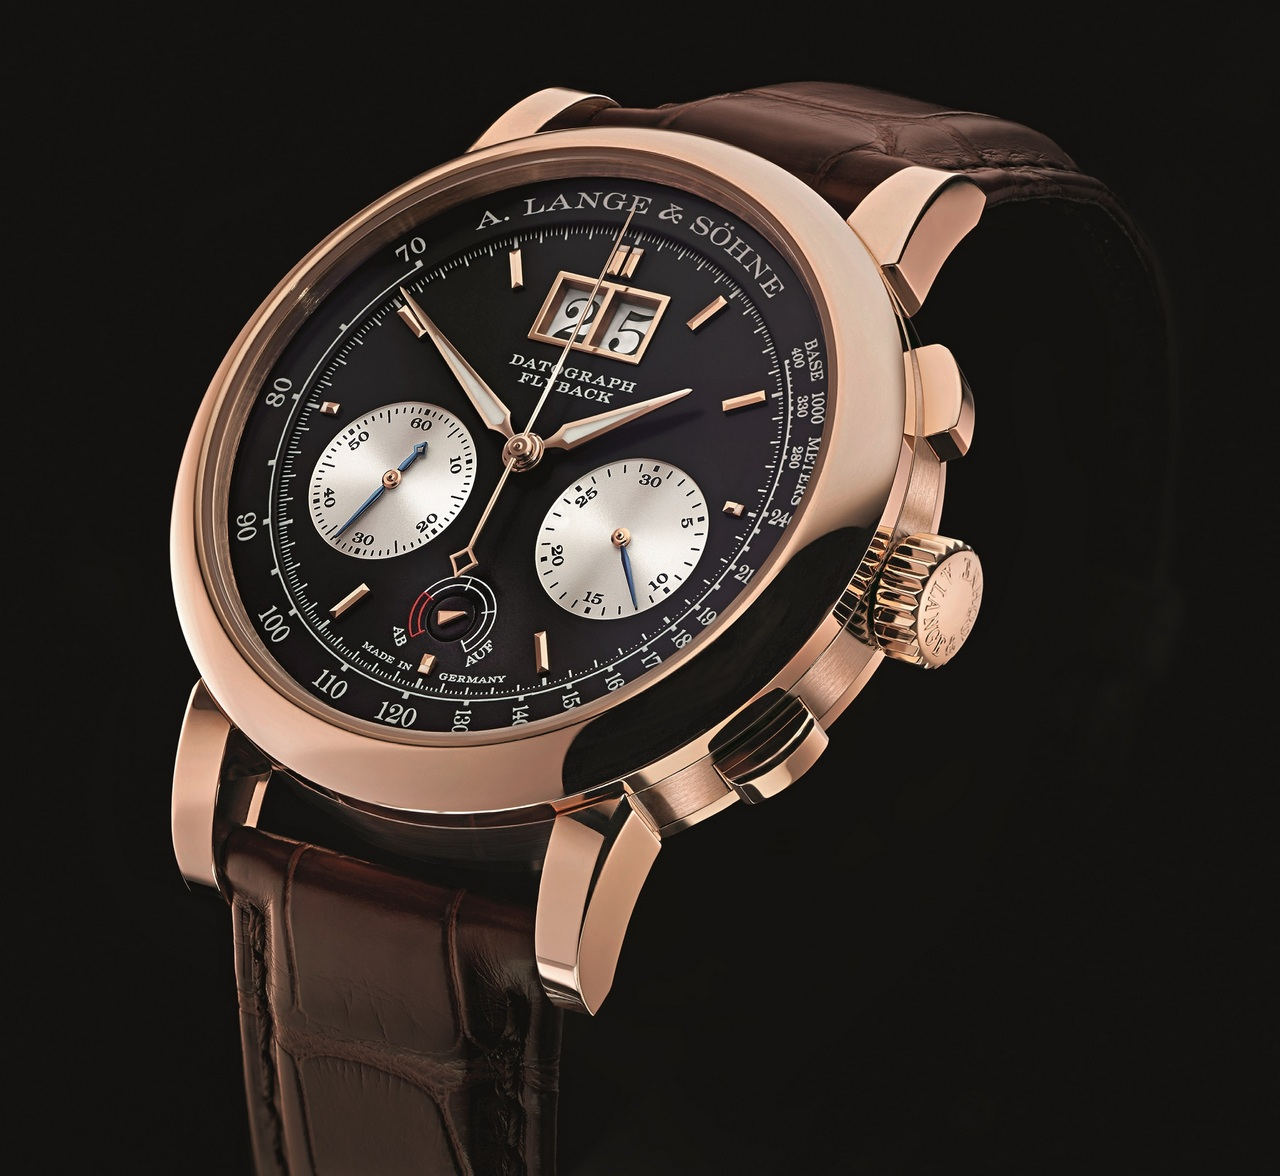 sihh-2015-a-lange-sohne-datograph-updown-oro-rosa-cronografo-flyback_0-100_1